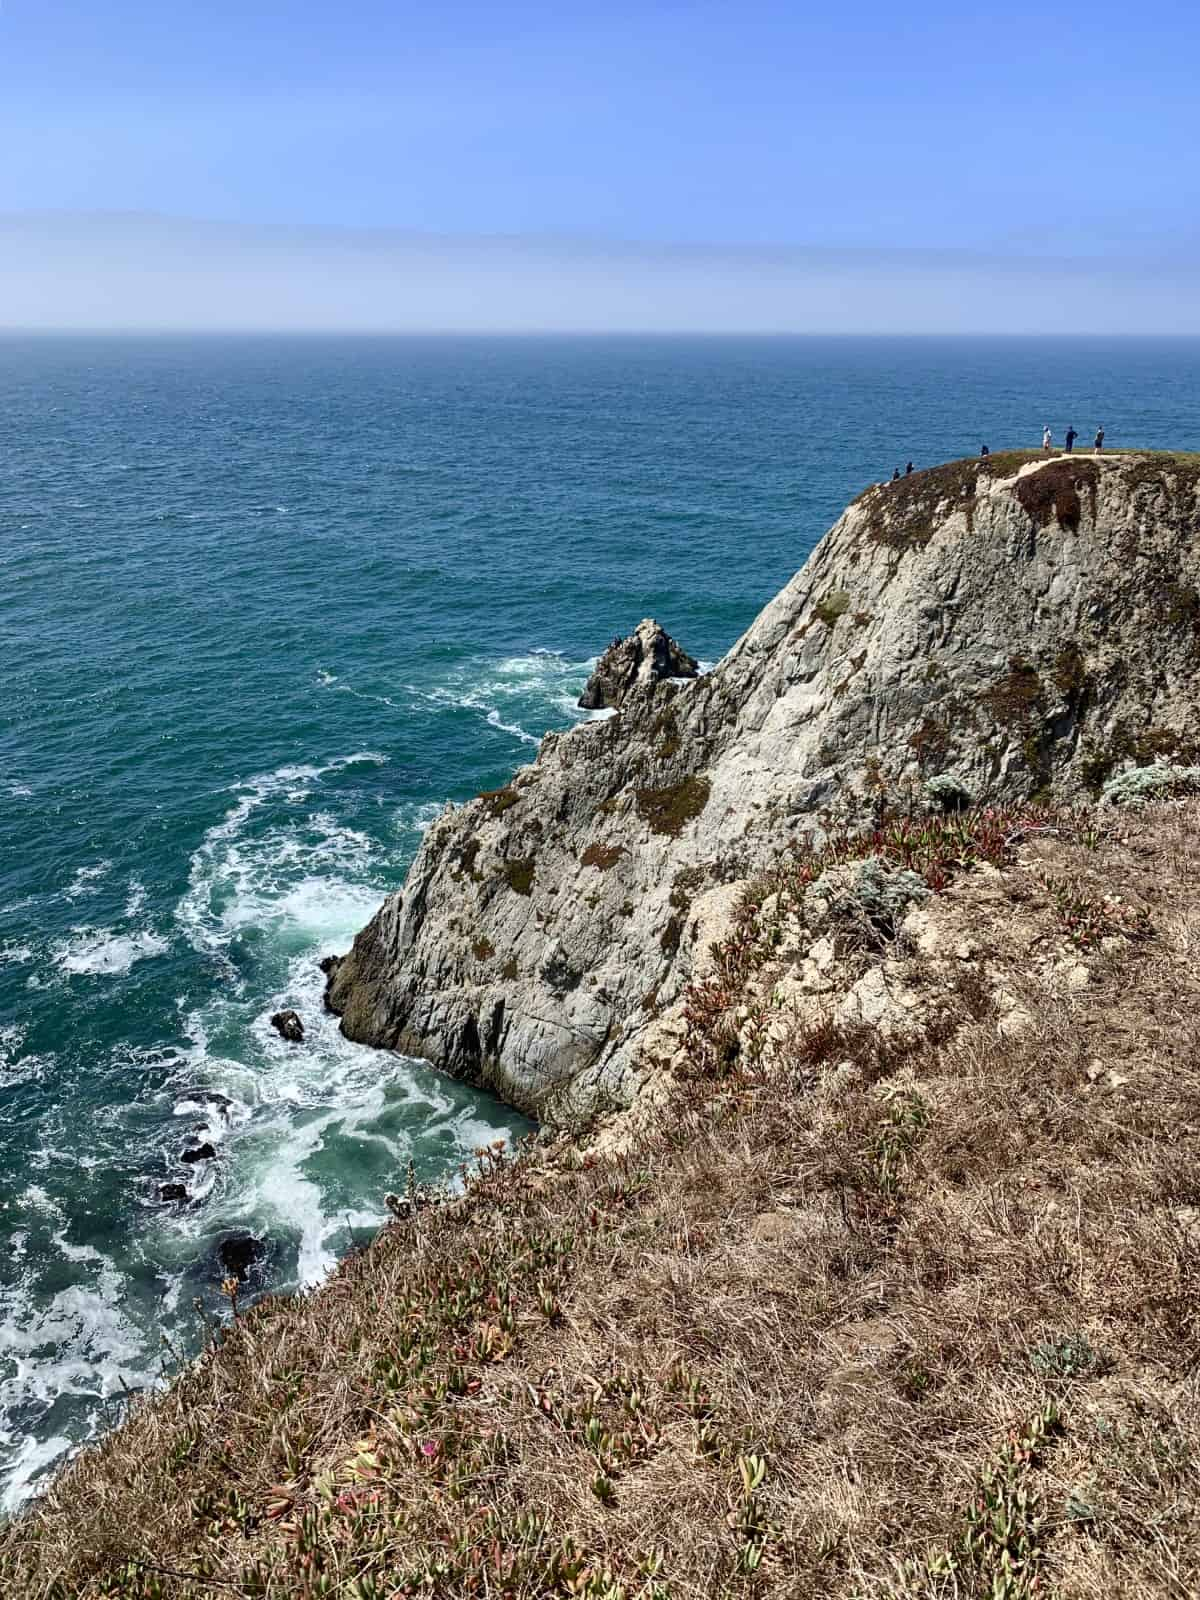 What to Do Along California's Sonoma Coast | This stretch of coastline has stunning views, awesome hiking, proximity to wine country, & great food. Things to do on the Sonoma Coast, what to see on the Sonoma Coast, tips & more! Sonoma Coast roadtrip or Northern California coast roadtrip ideas. #sonomacoast #california #roadtrip #northerncalifornia #bodegabay